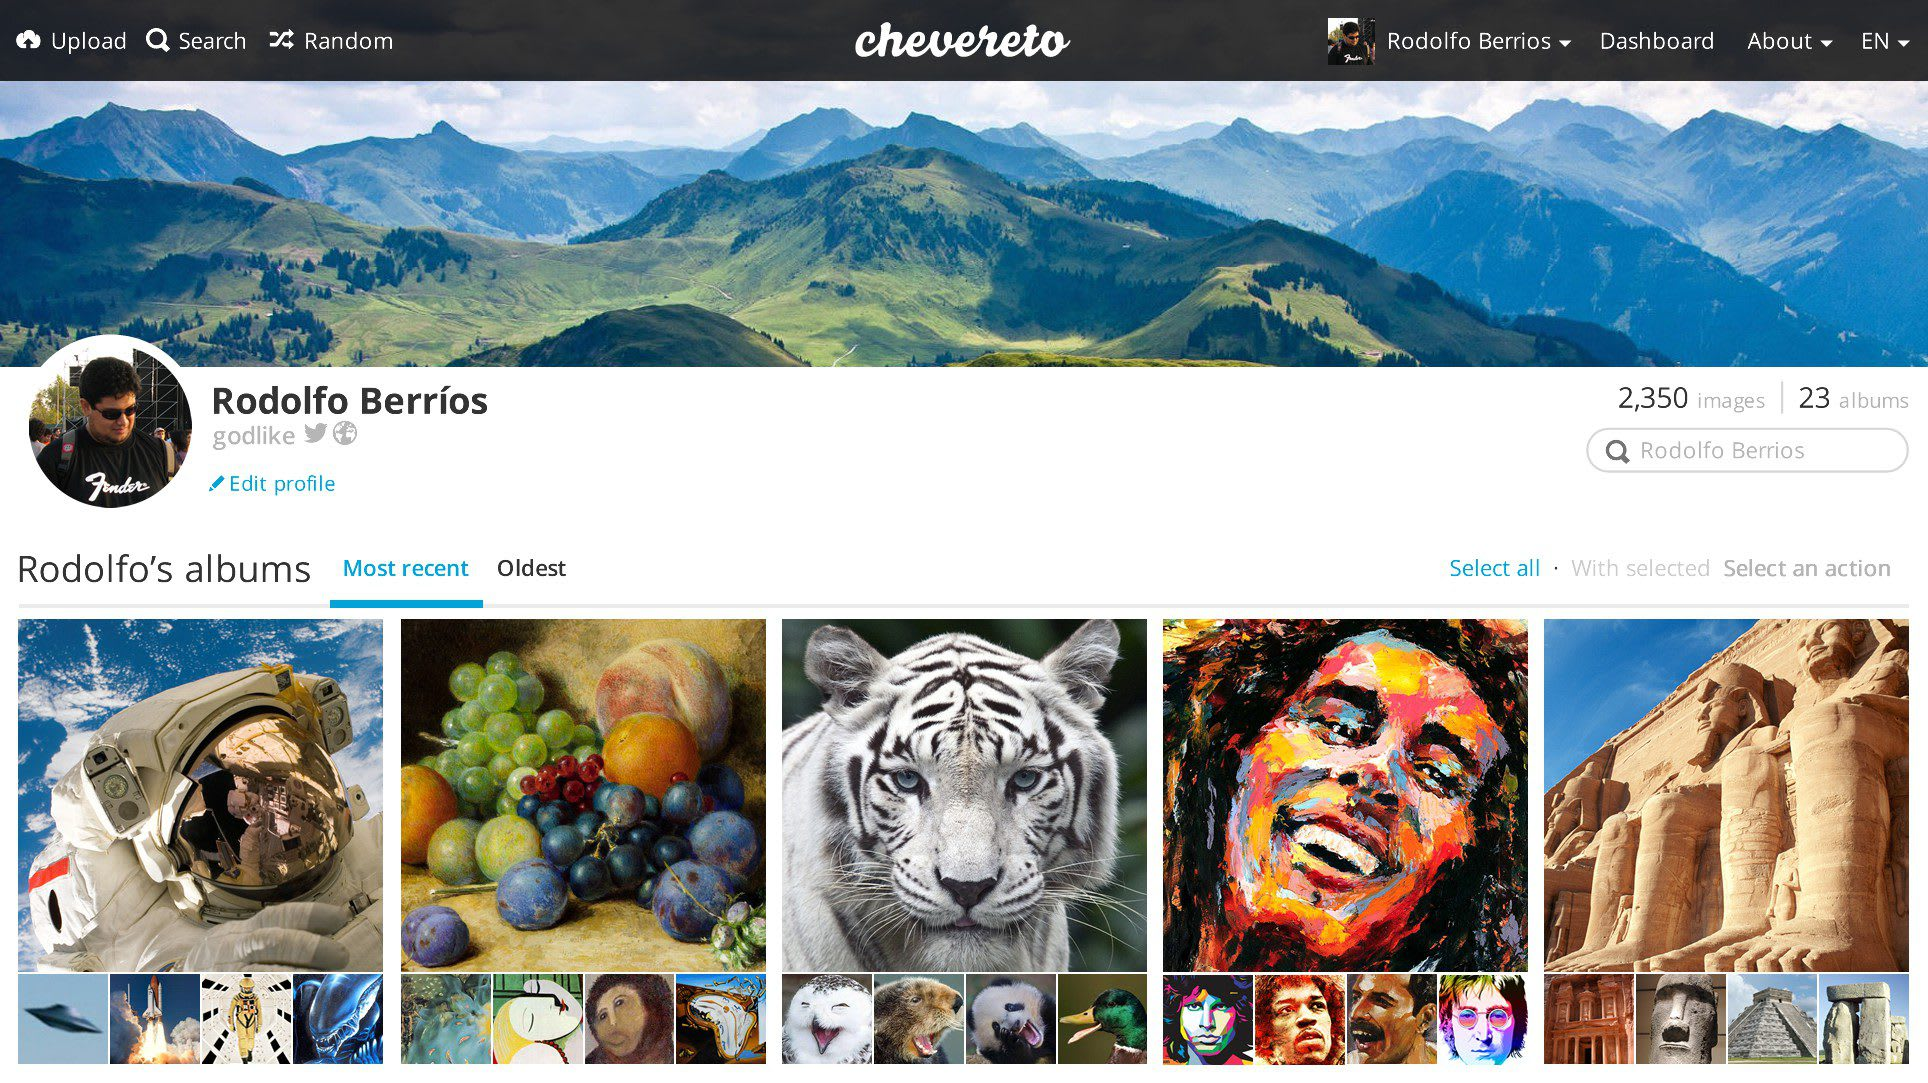 Chevereto: An Image Hosting CMS With a Tempting Arvixe Hosting Bundle